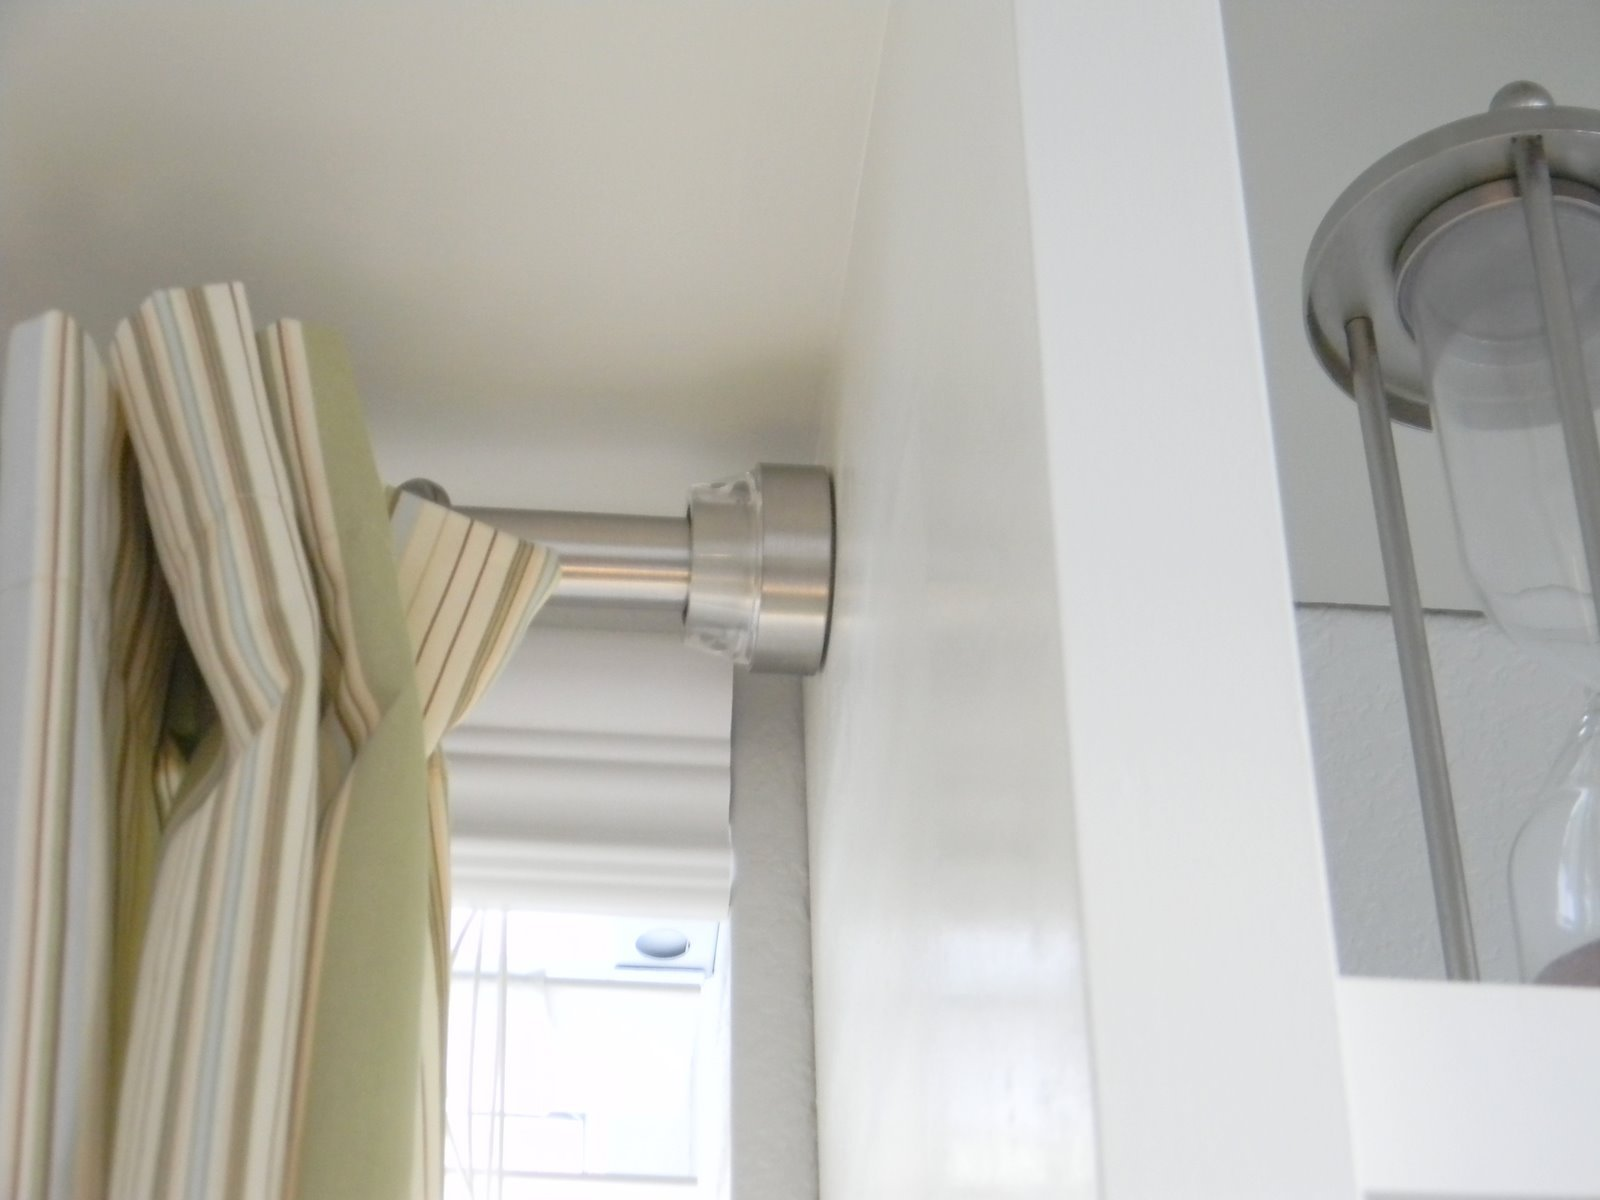 Curtain Shower Rods | Shower Curtain Pole Curved | Shower Curtain Tension Rod